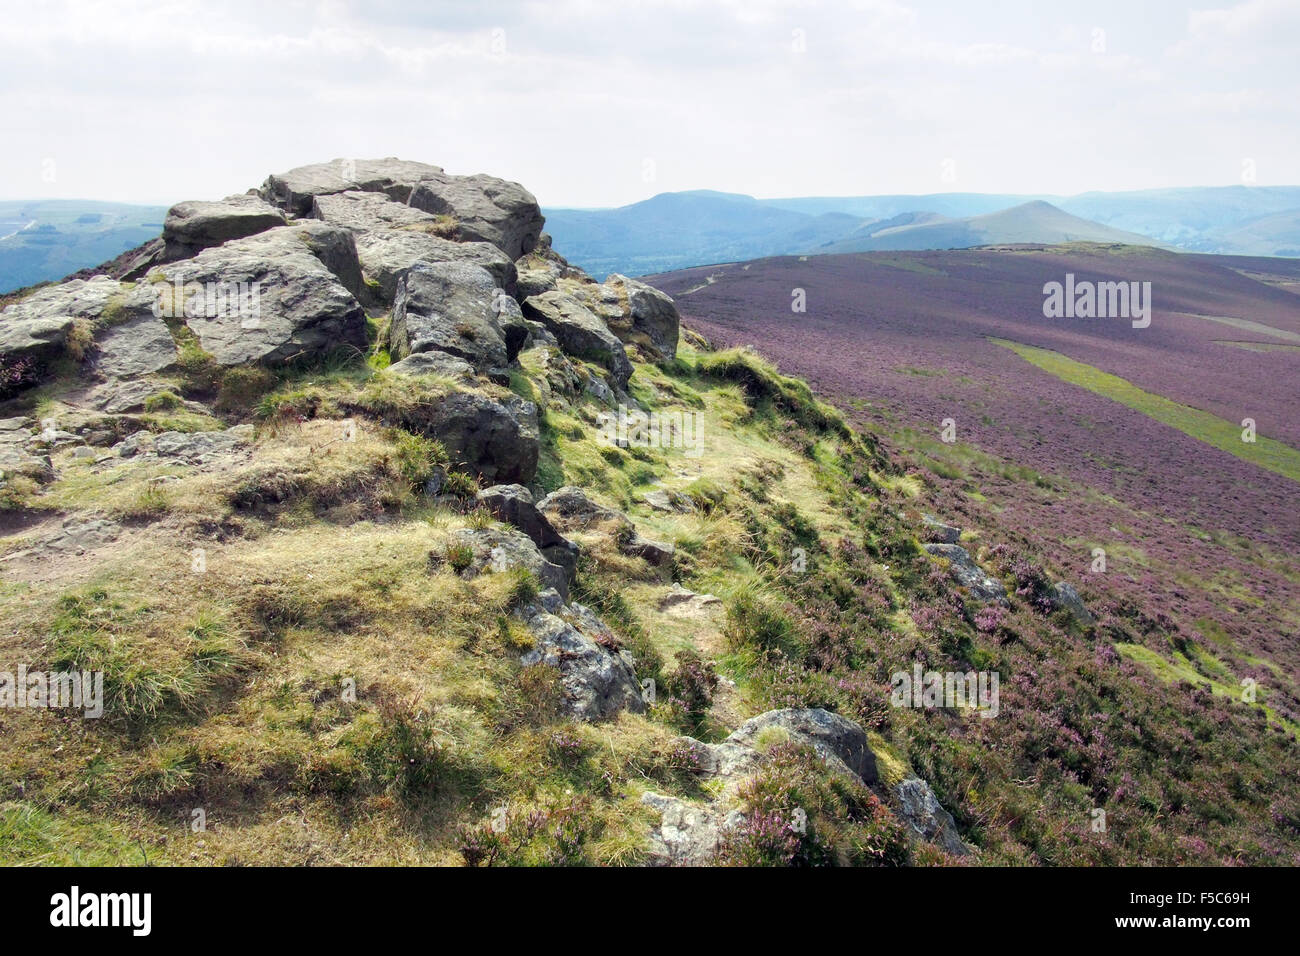 Win Hill in Derbyshire Peak District Dark Peak, England UK - Stock Image